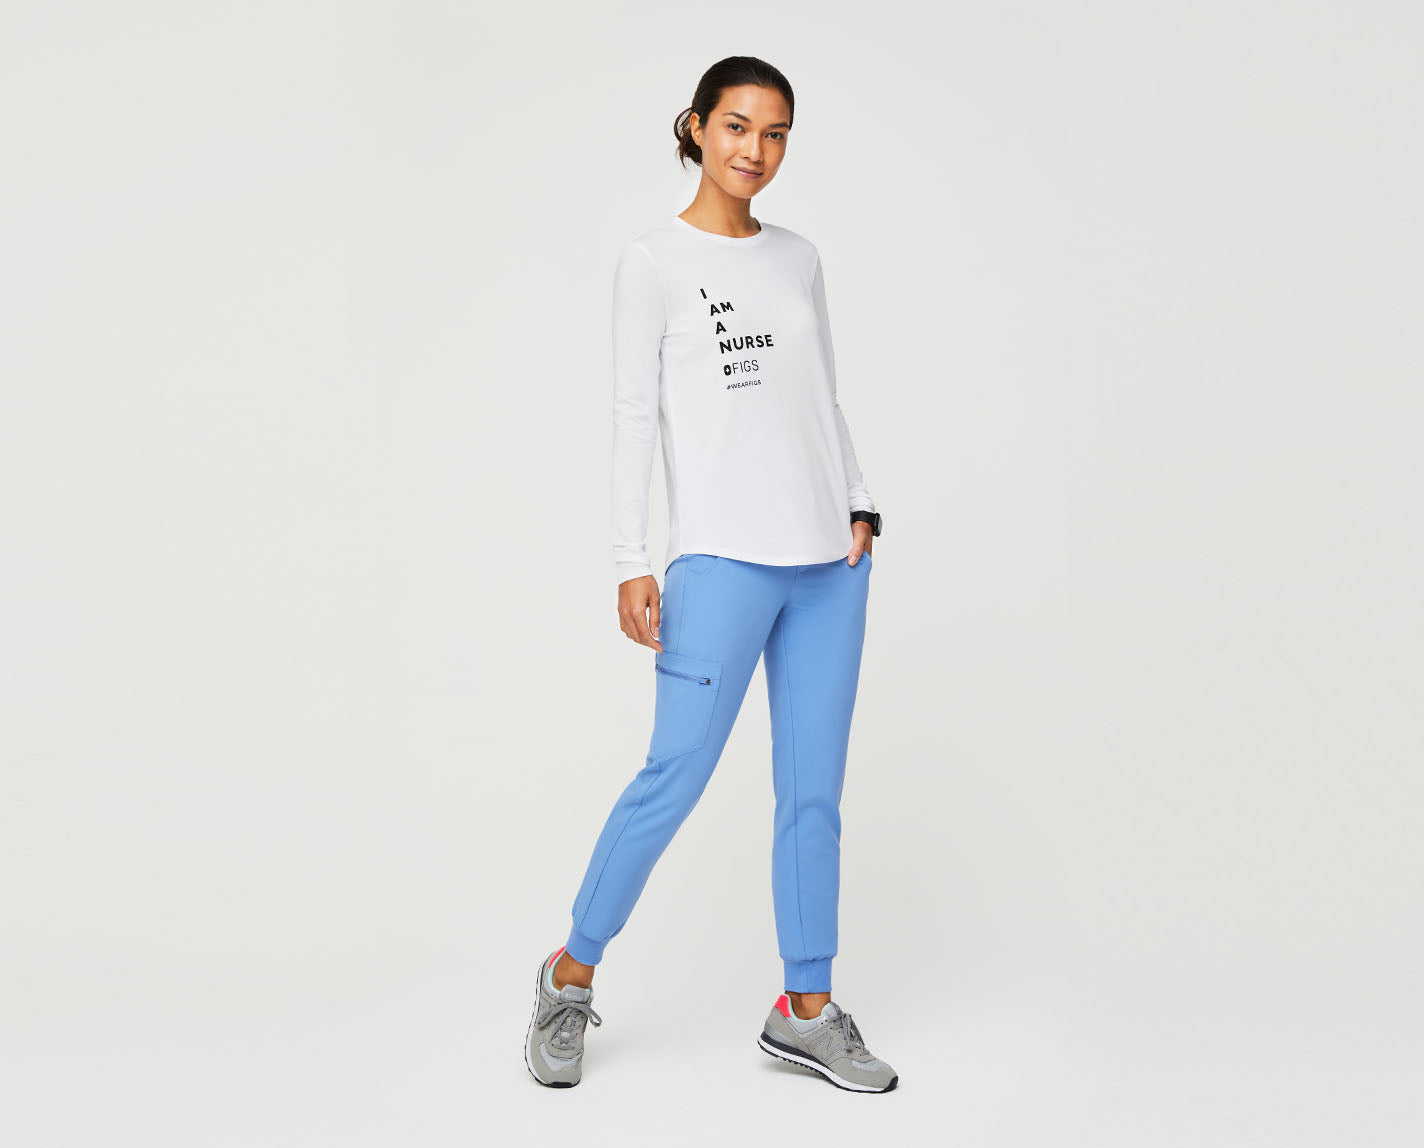 """Be proud of who you are. The special """"I Am A Nurse"""" Underscrub has a relaxed fit, subtle curved hem and, of course, a graphic on the chest letting everyone know that you are proud to be a nurse."""